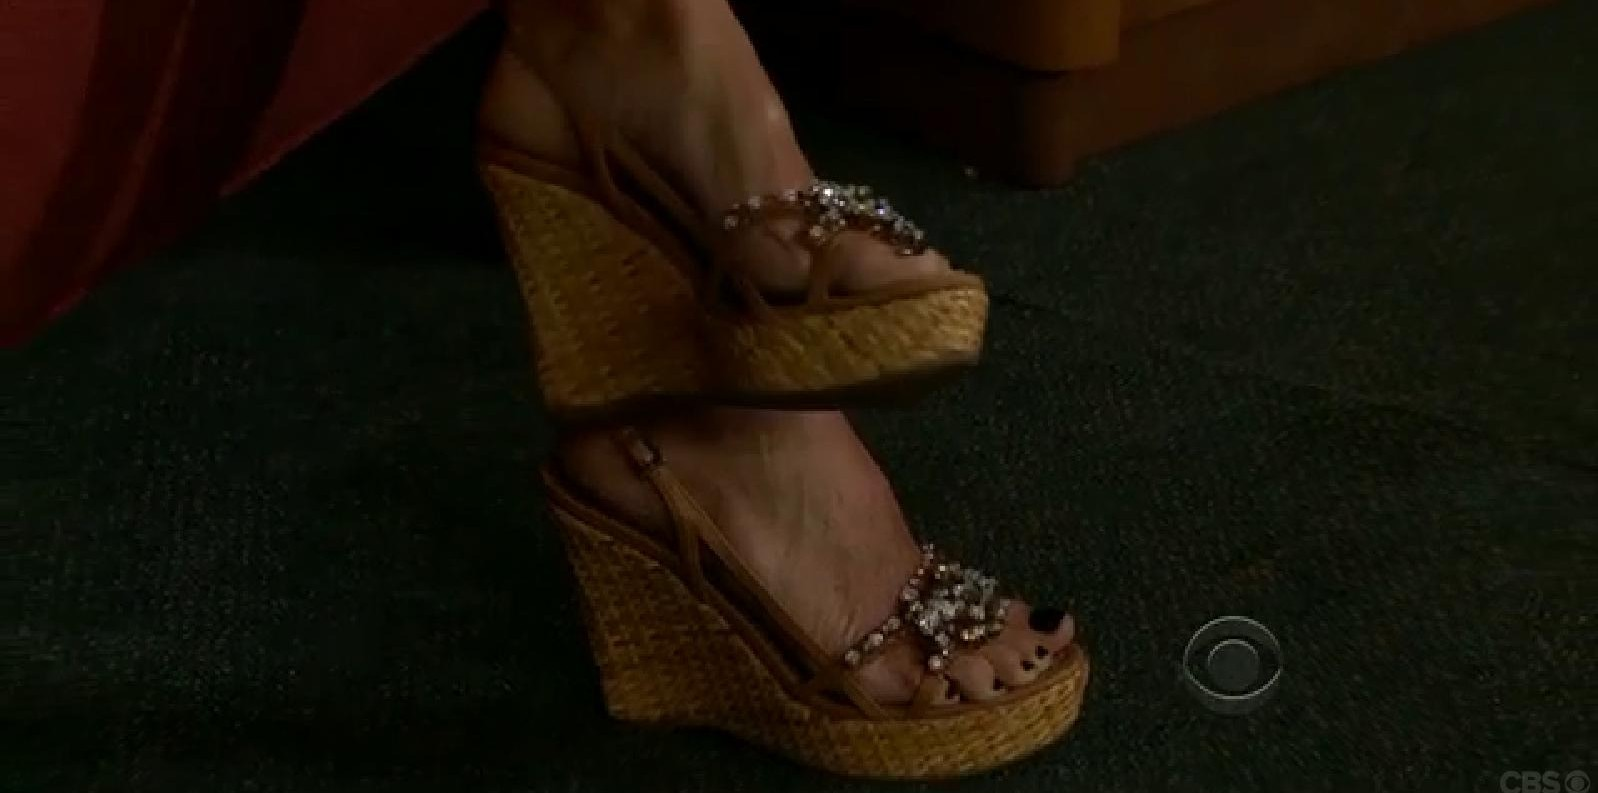 Minnie driver feet